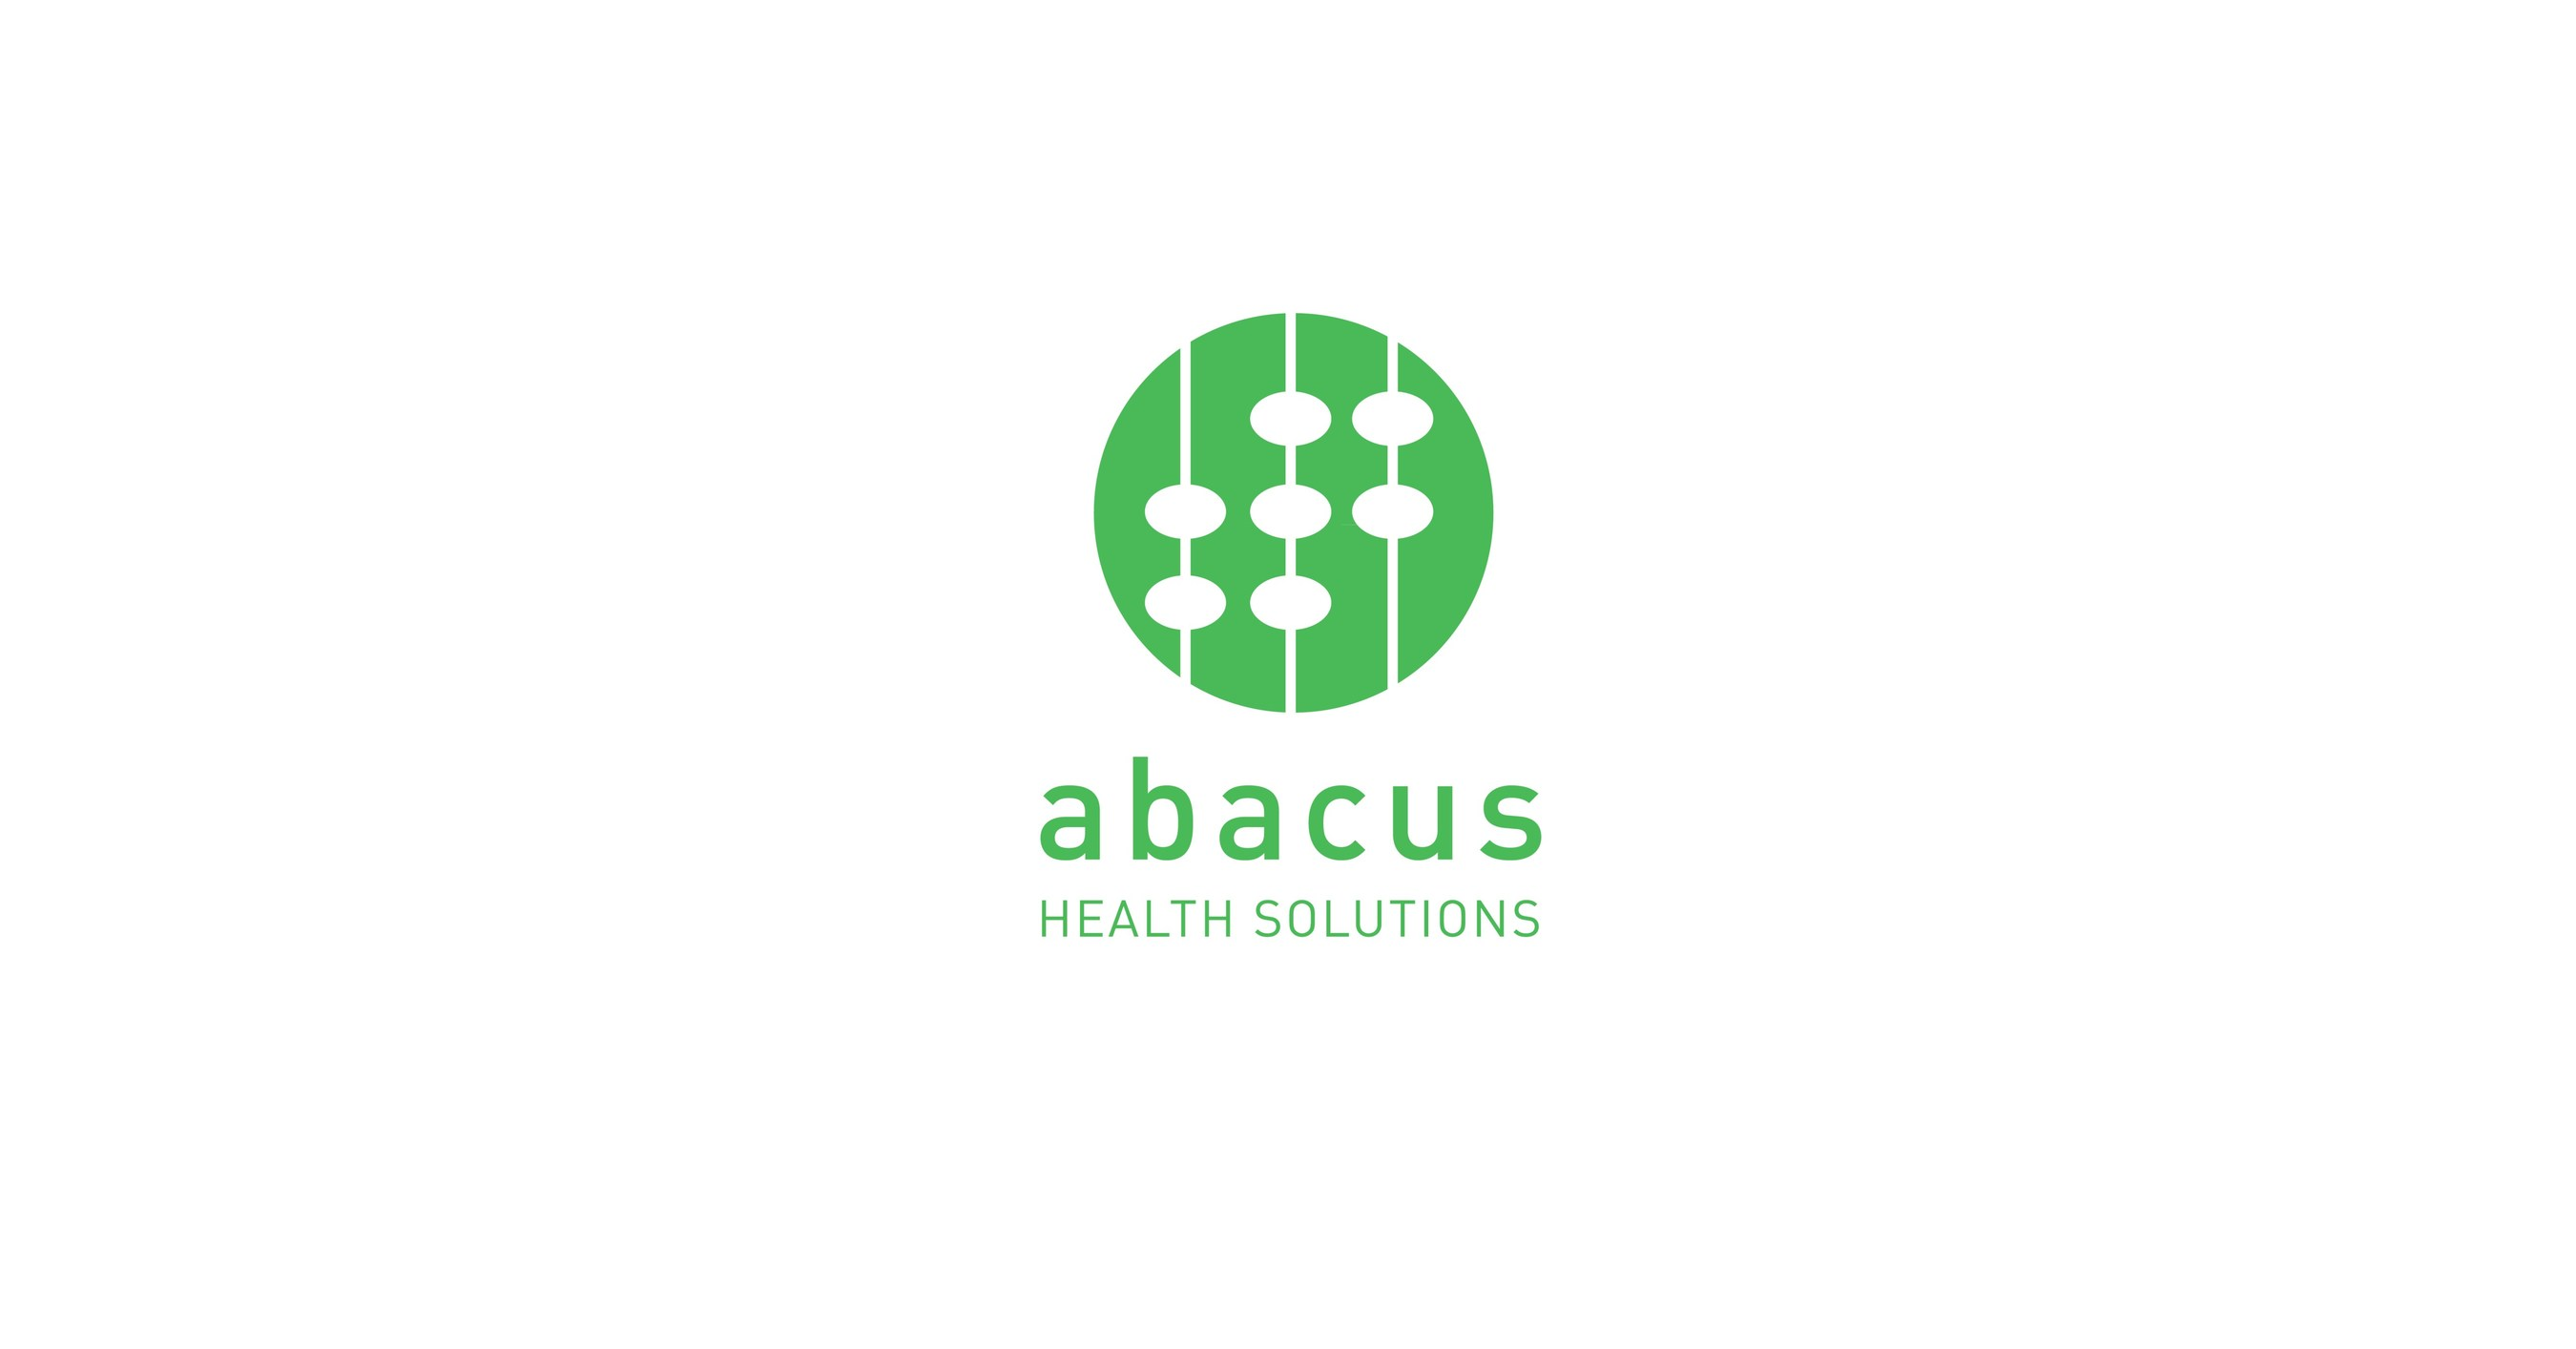 Abacus Health Solutions